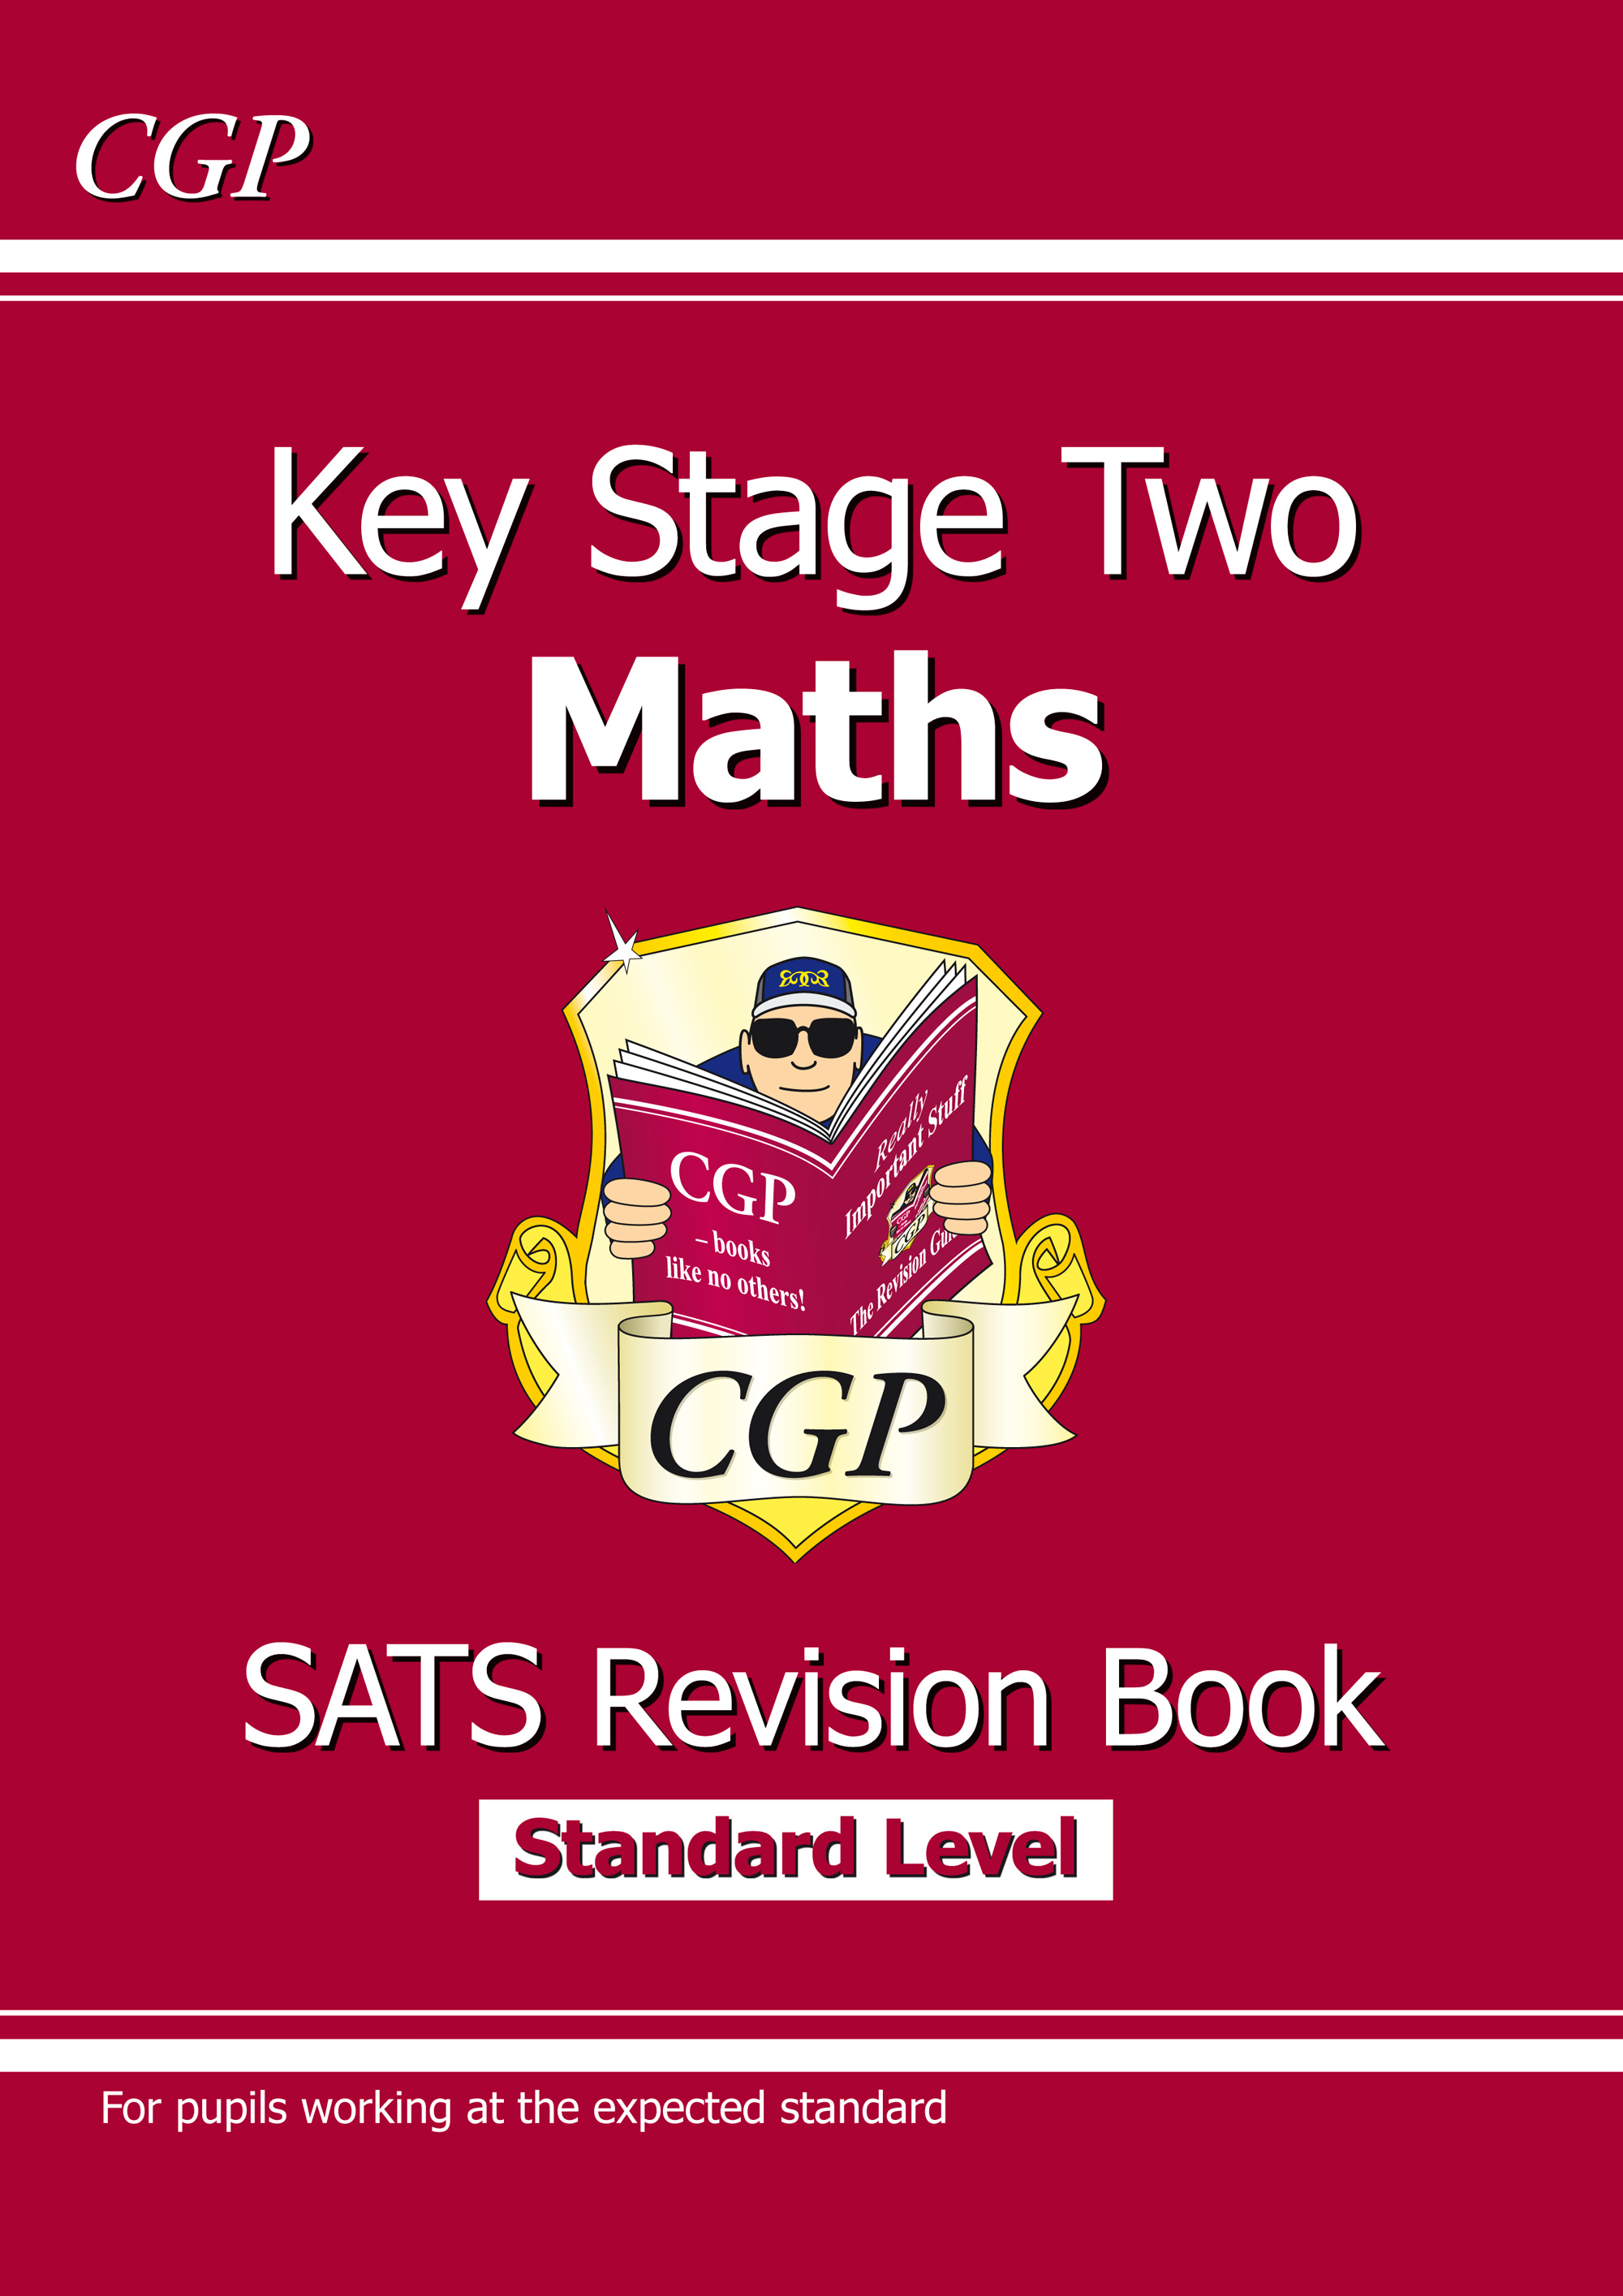 MLFR22 - KS2 Maths Targeted SATs Revision Book - Standard Level (for the 2019 tests)